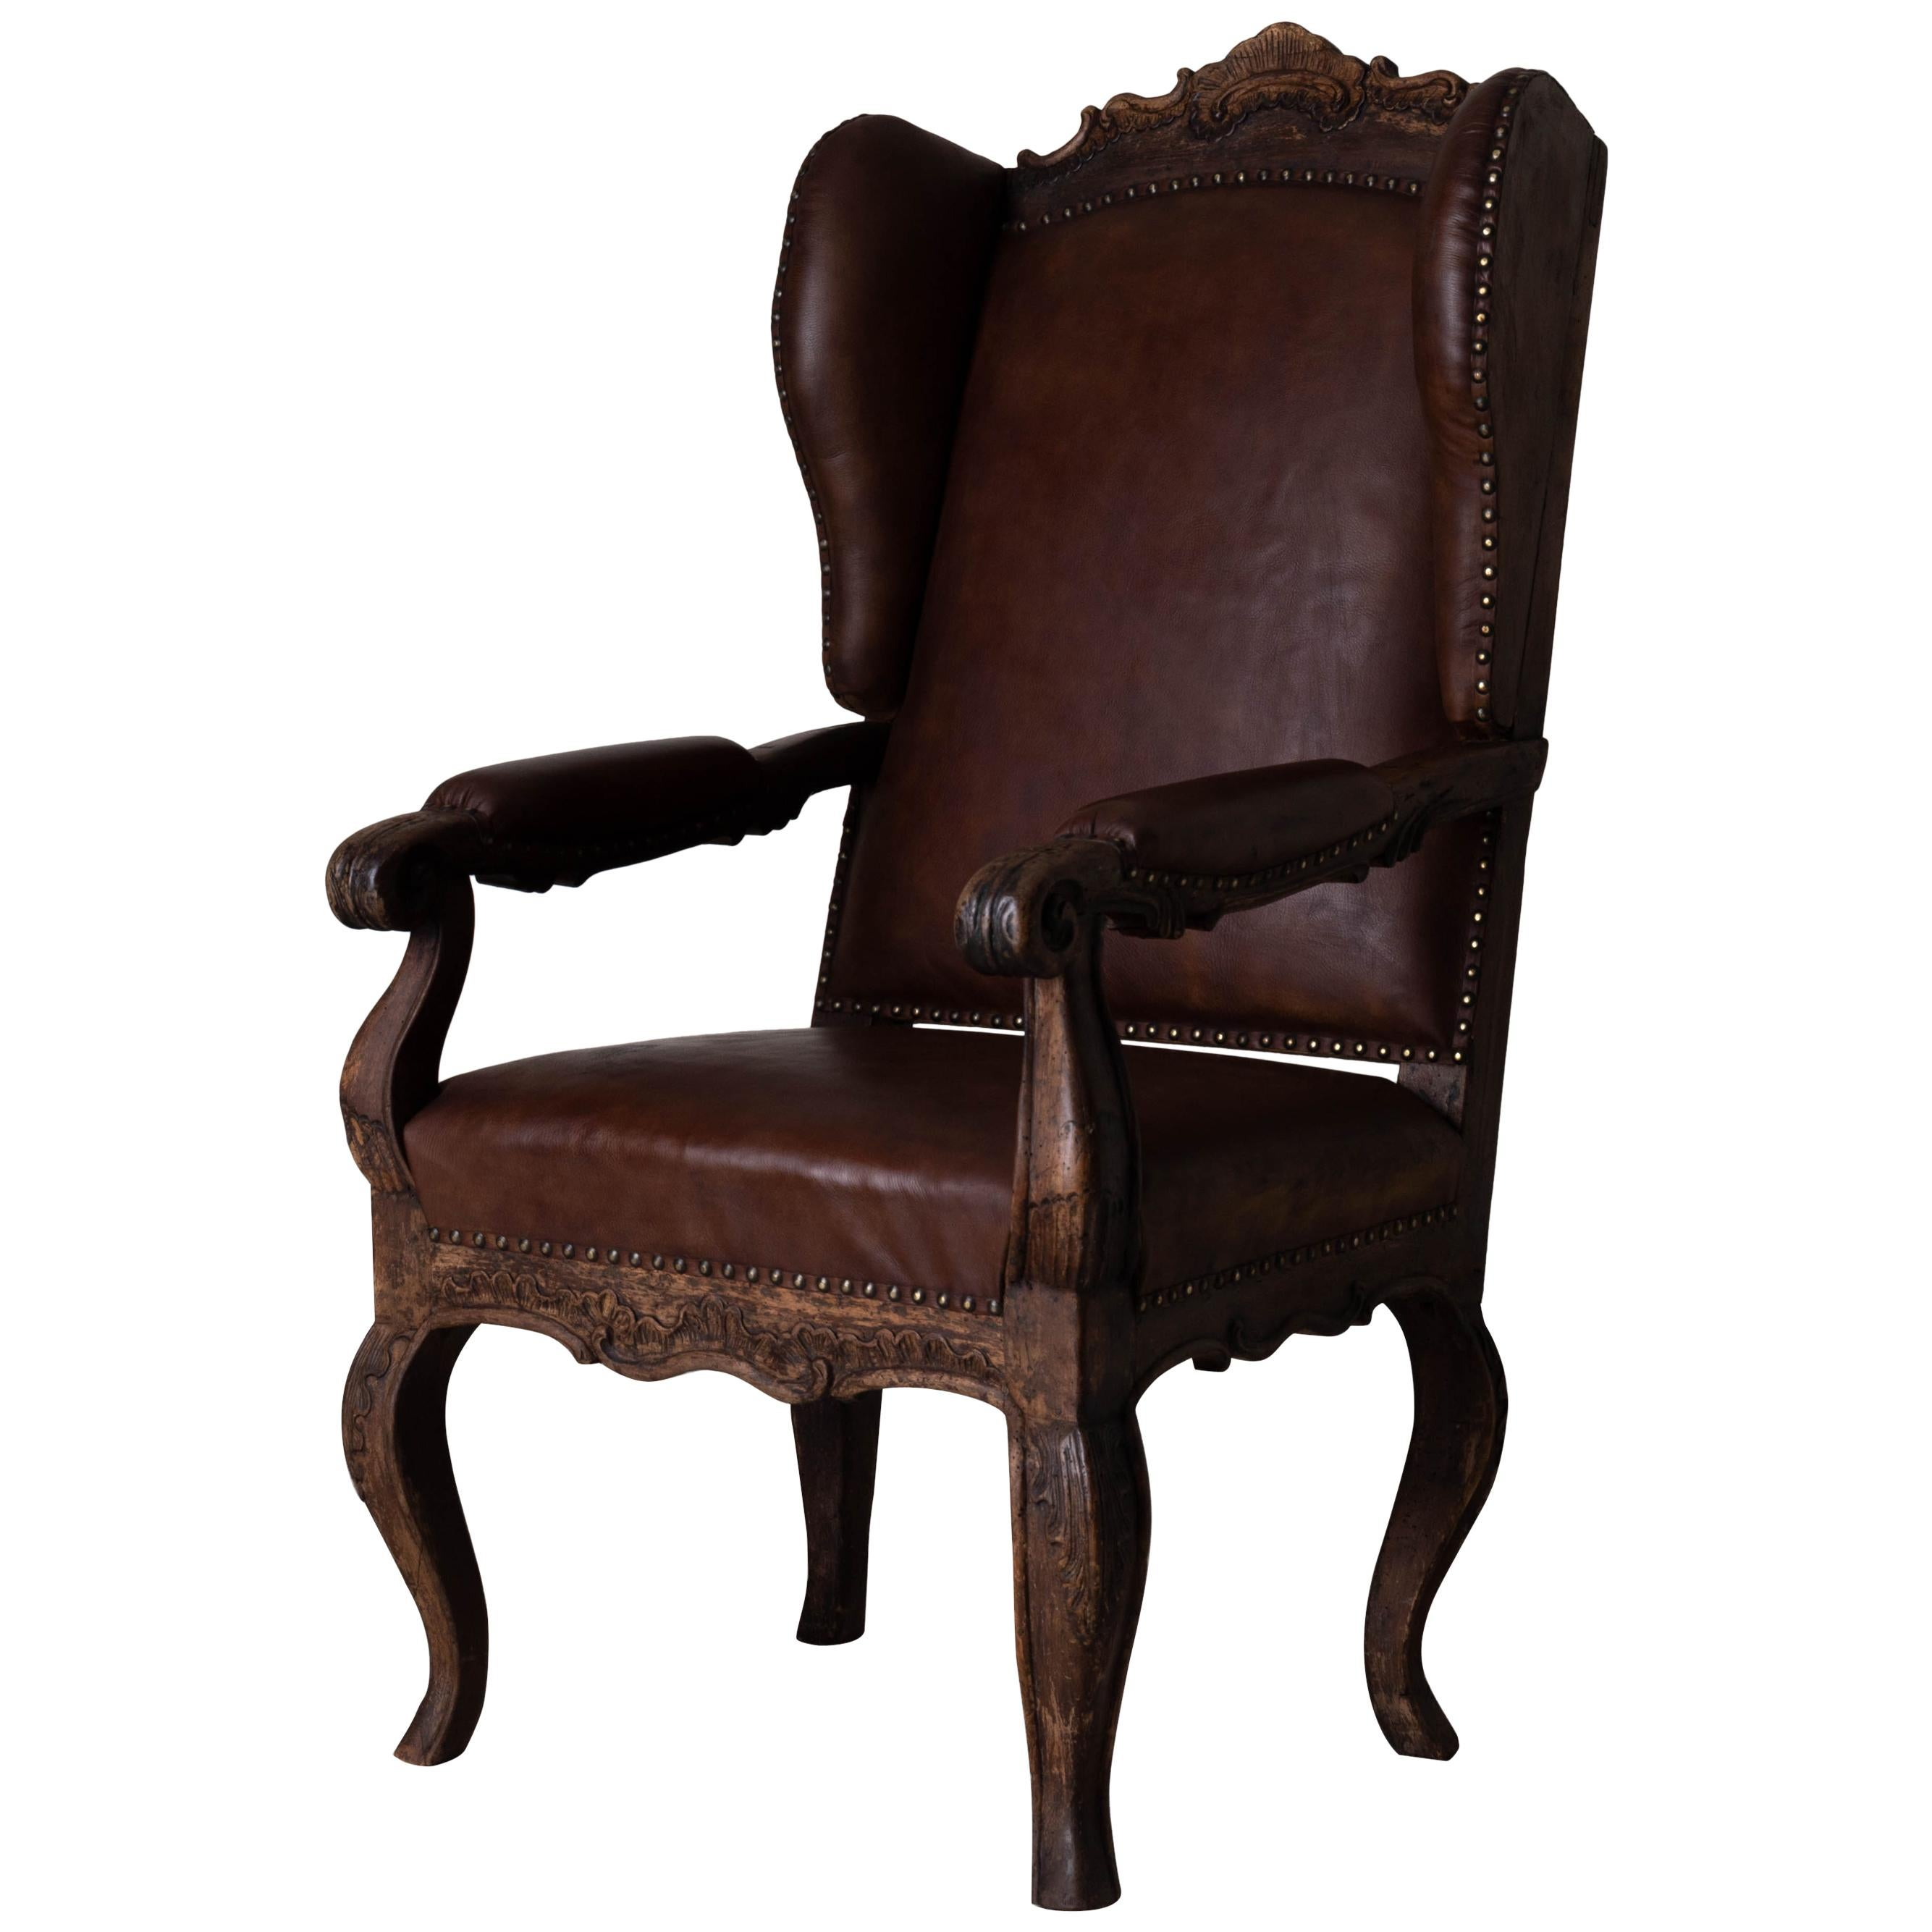 Chair Wingback Swedish Rococo Period 1750-1775 Brown Leather Sweden